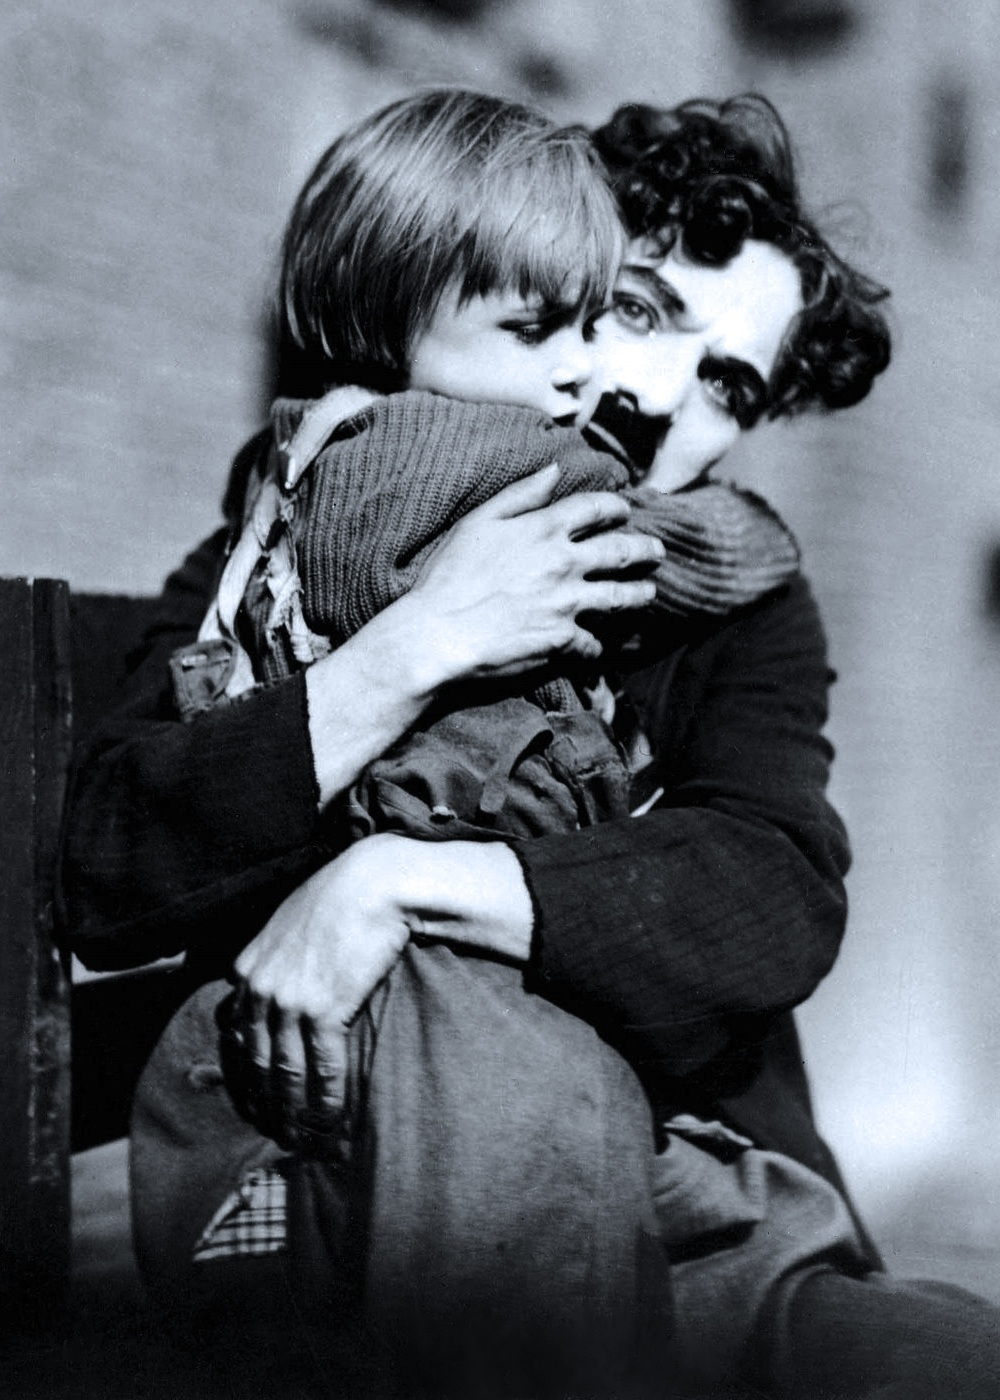 Jackie Coogan and Charlie Chaplin in The Kid (1921), blue tint cropped